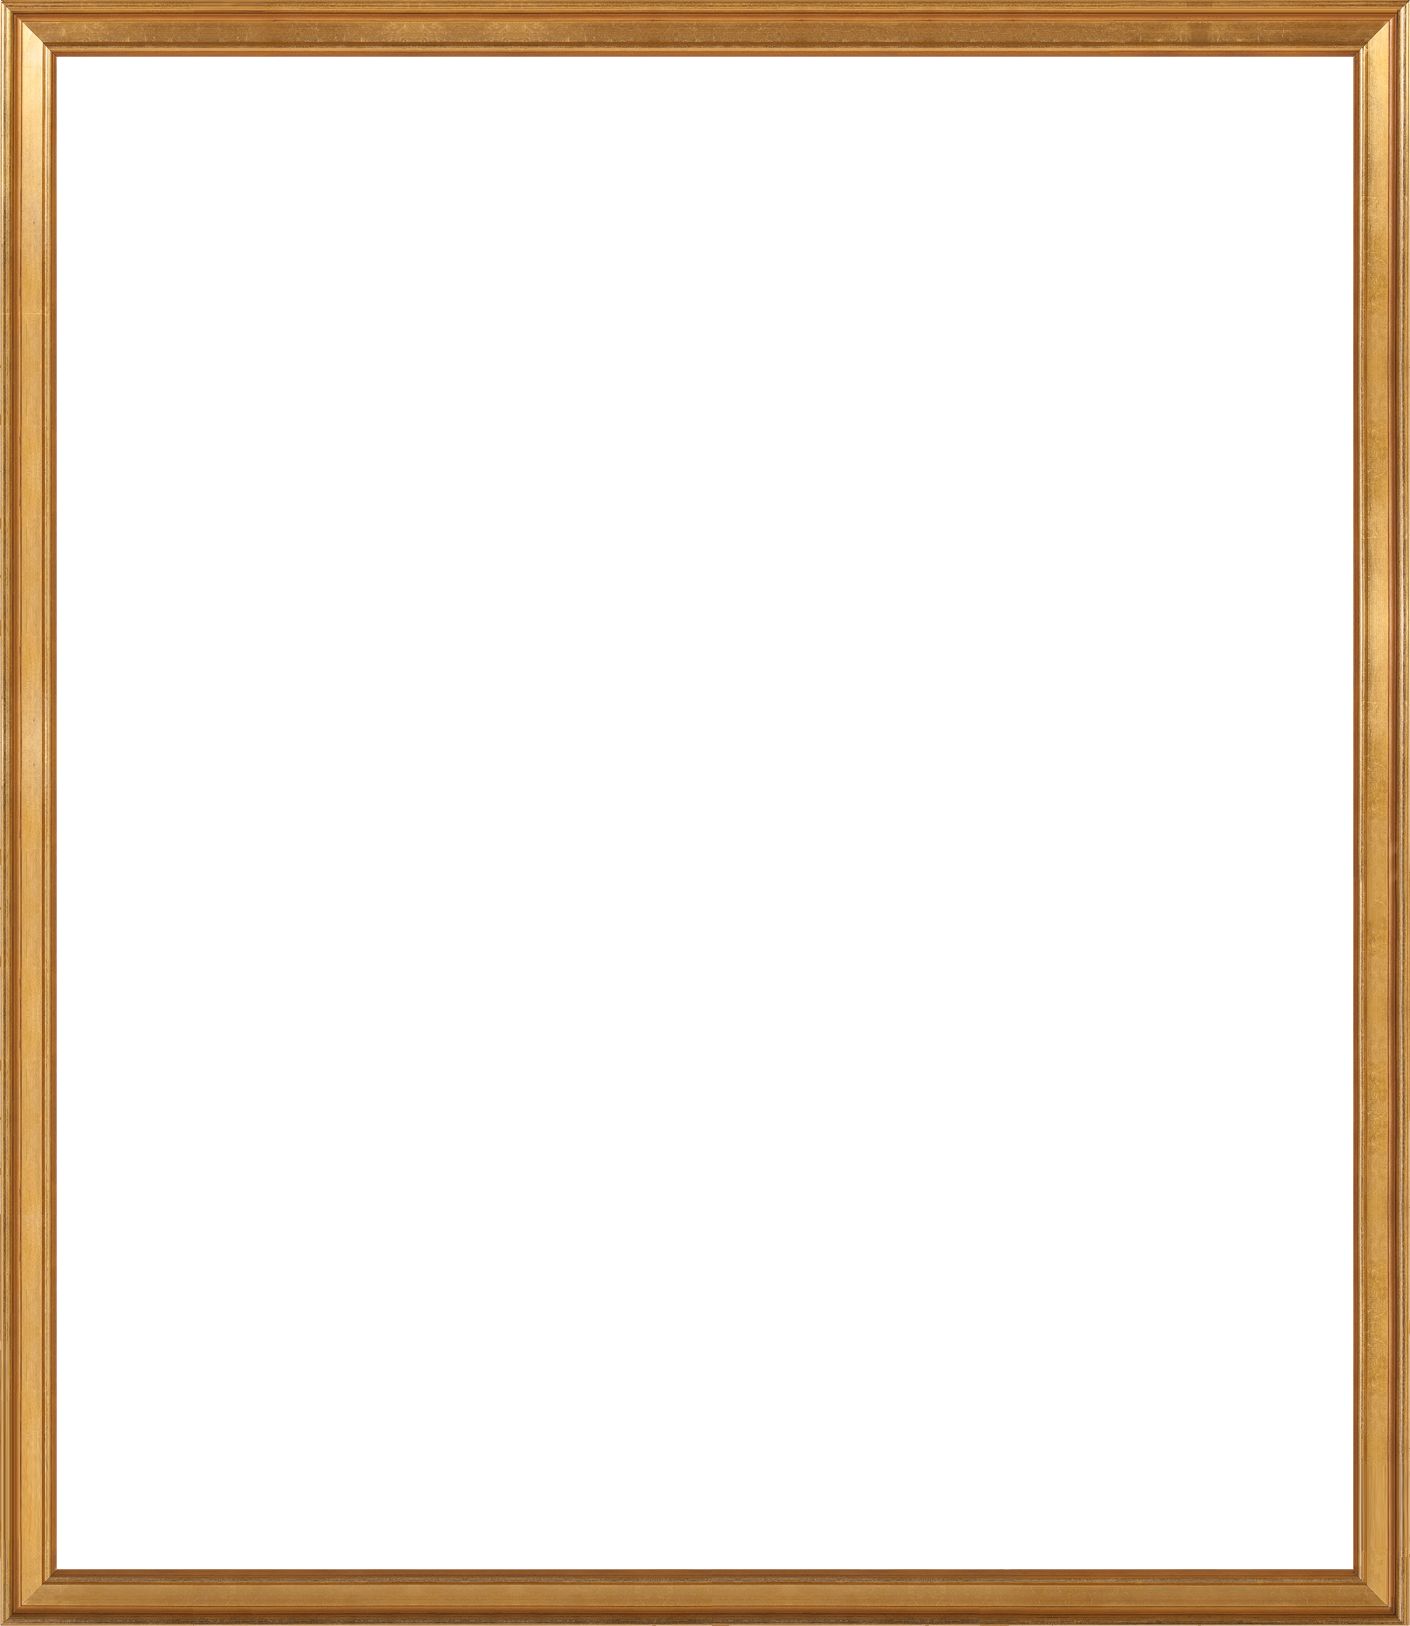 Gold frame png. Transparent images all hd